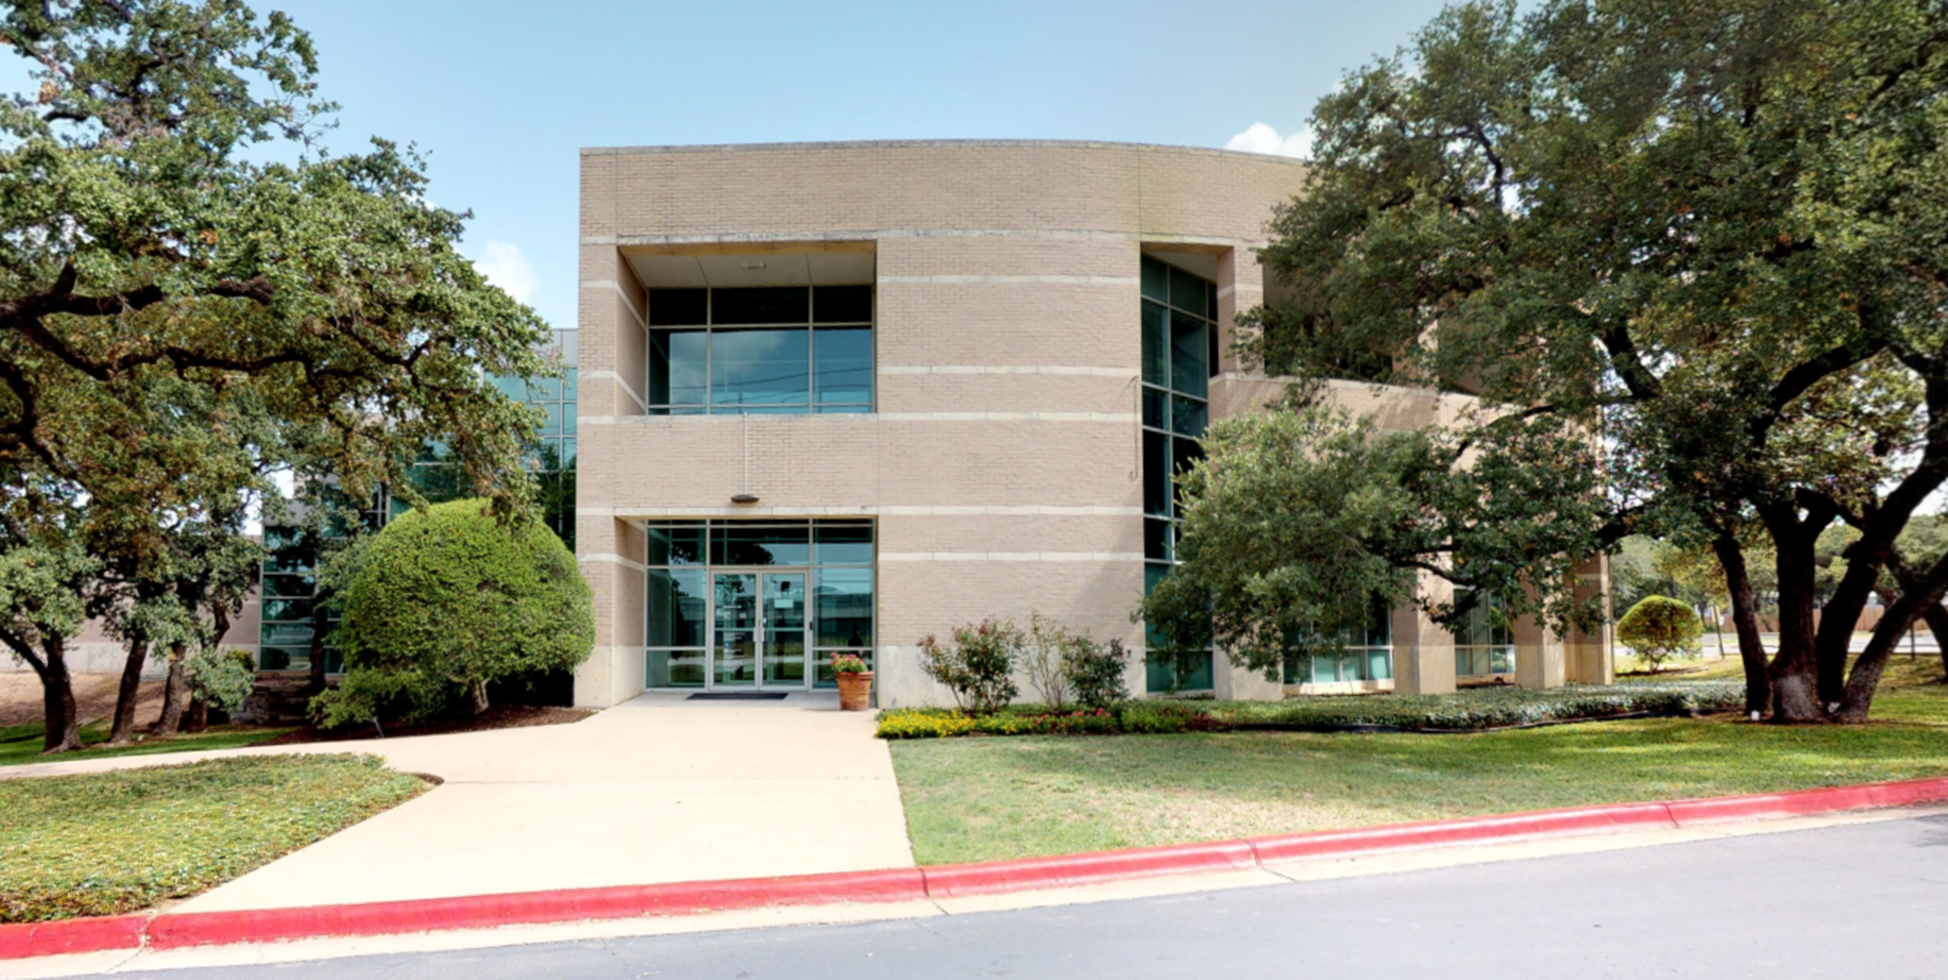 Bank of America financial center with drive-thru ATM | 5725 Highway 290 W, Austin, TX 78735